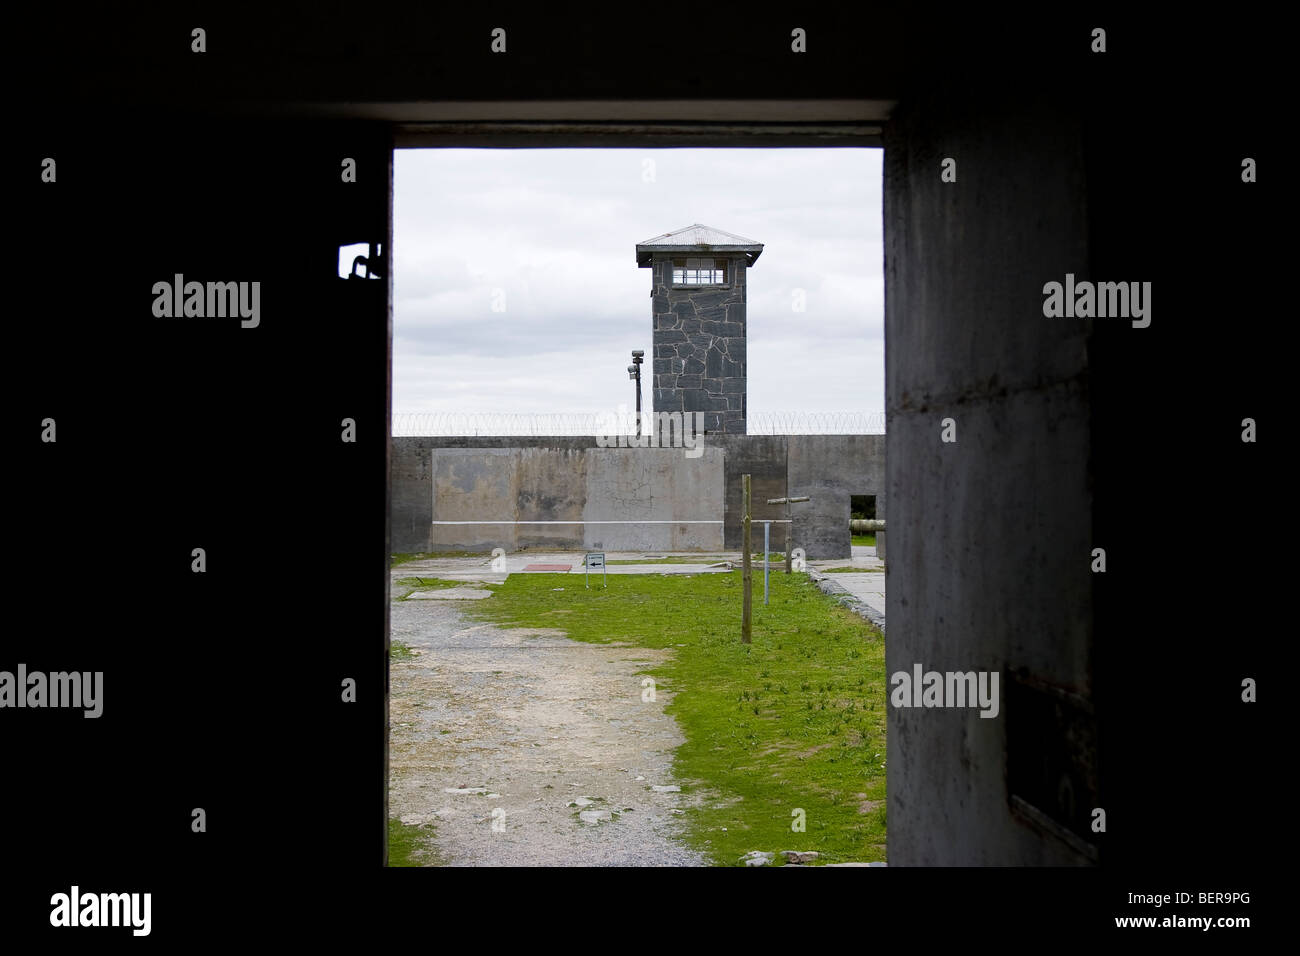 Prison courtyard, Robben Island Museum, Cape Town, South Africa - Stock Image